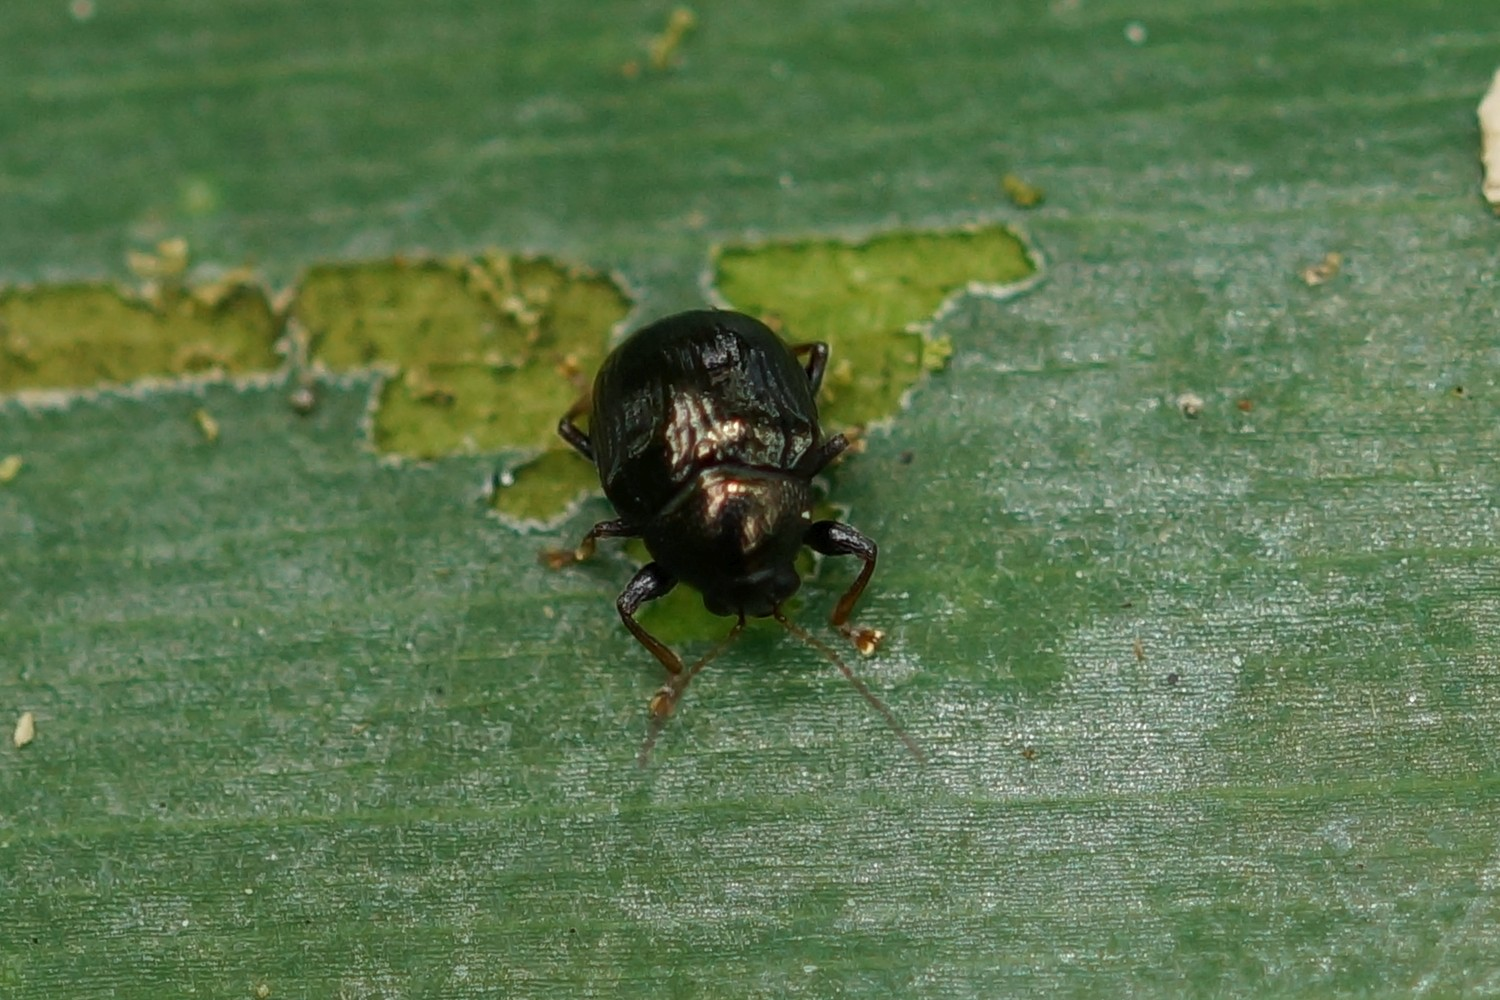 Chrysomelidae sp. (Blattkäfer)